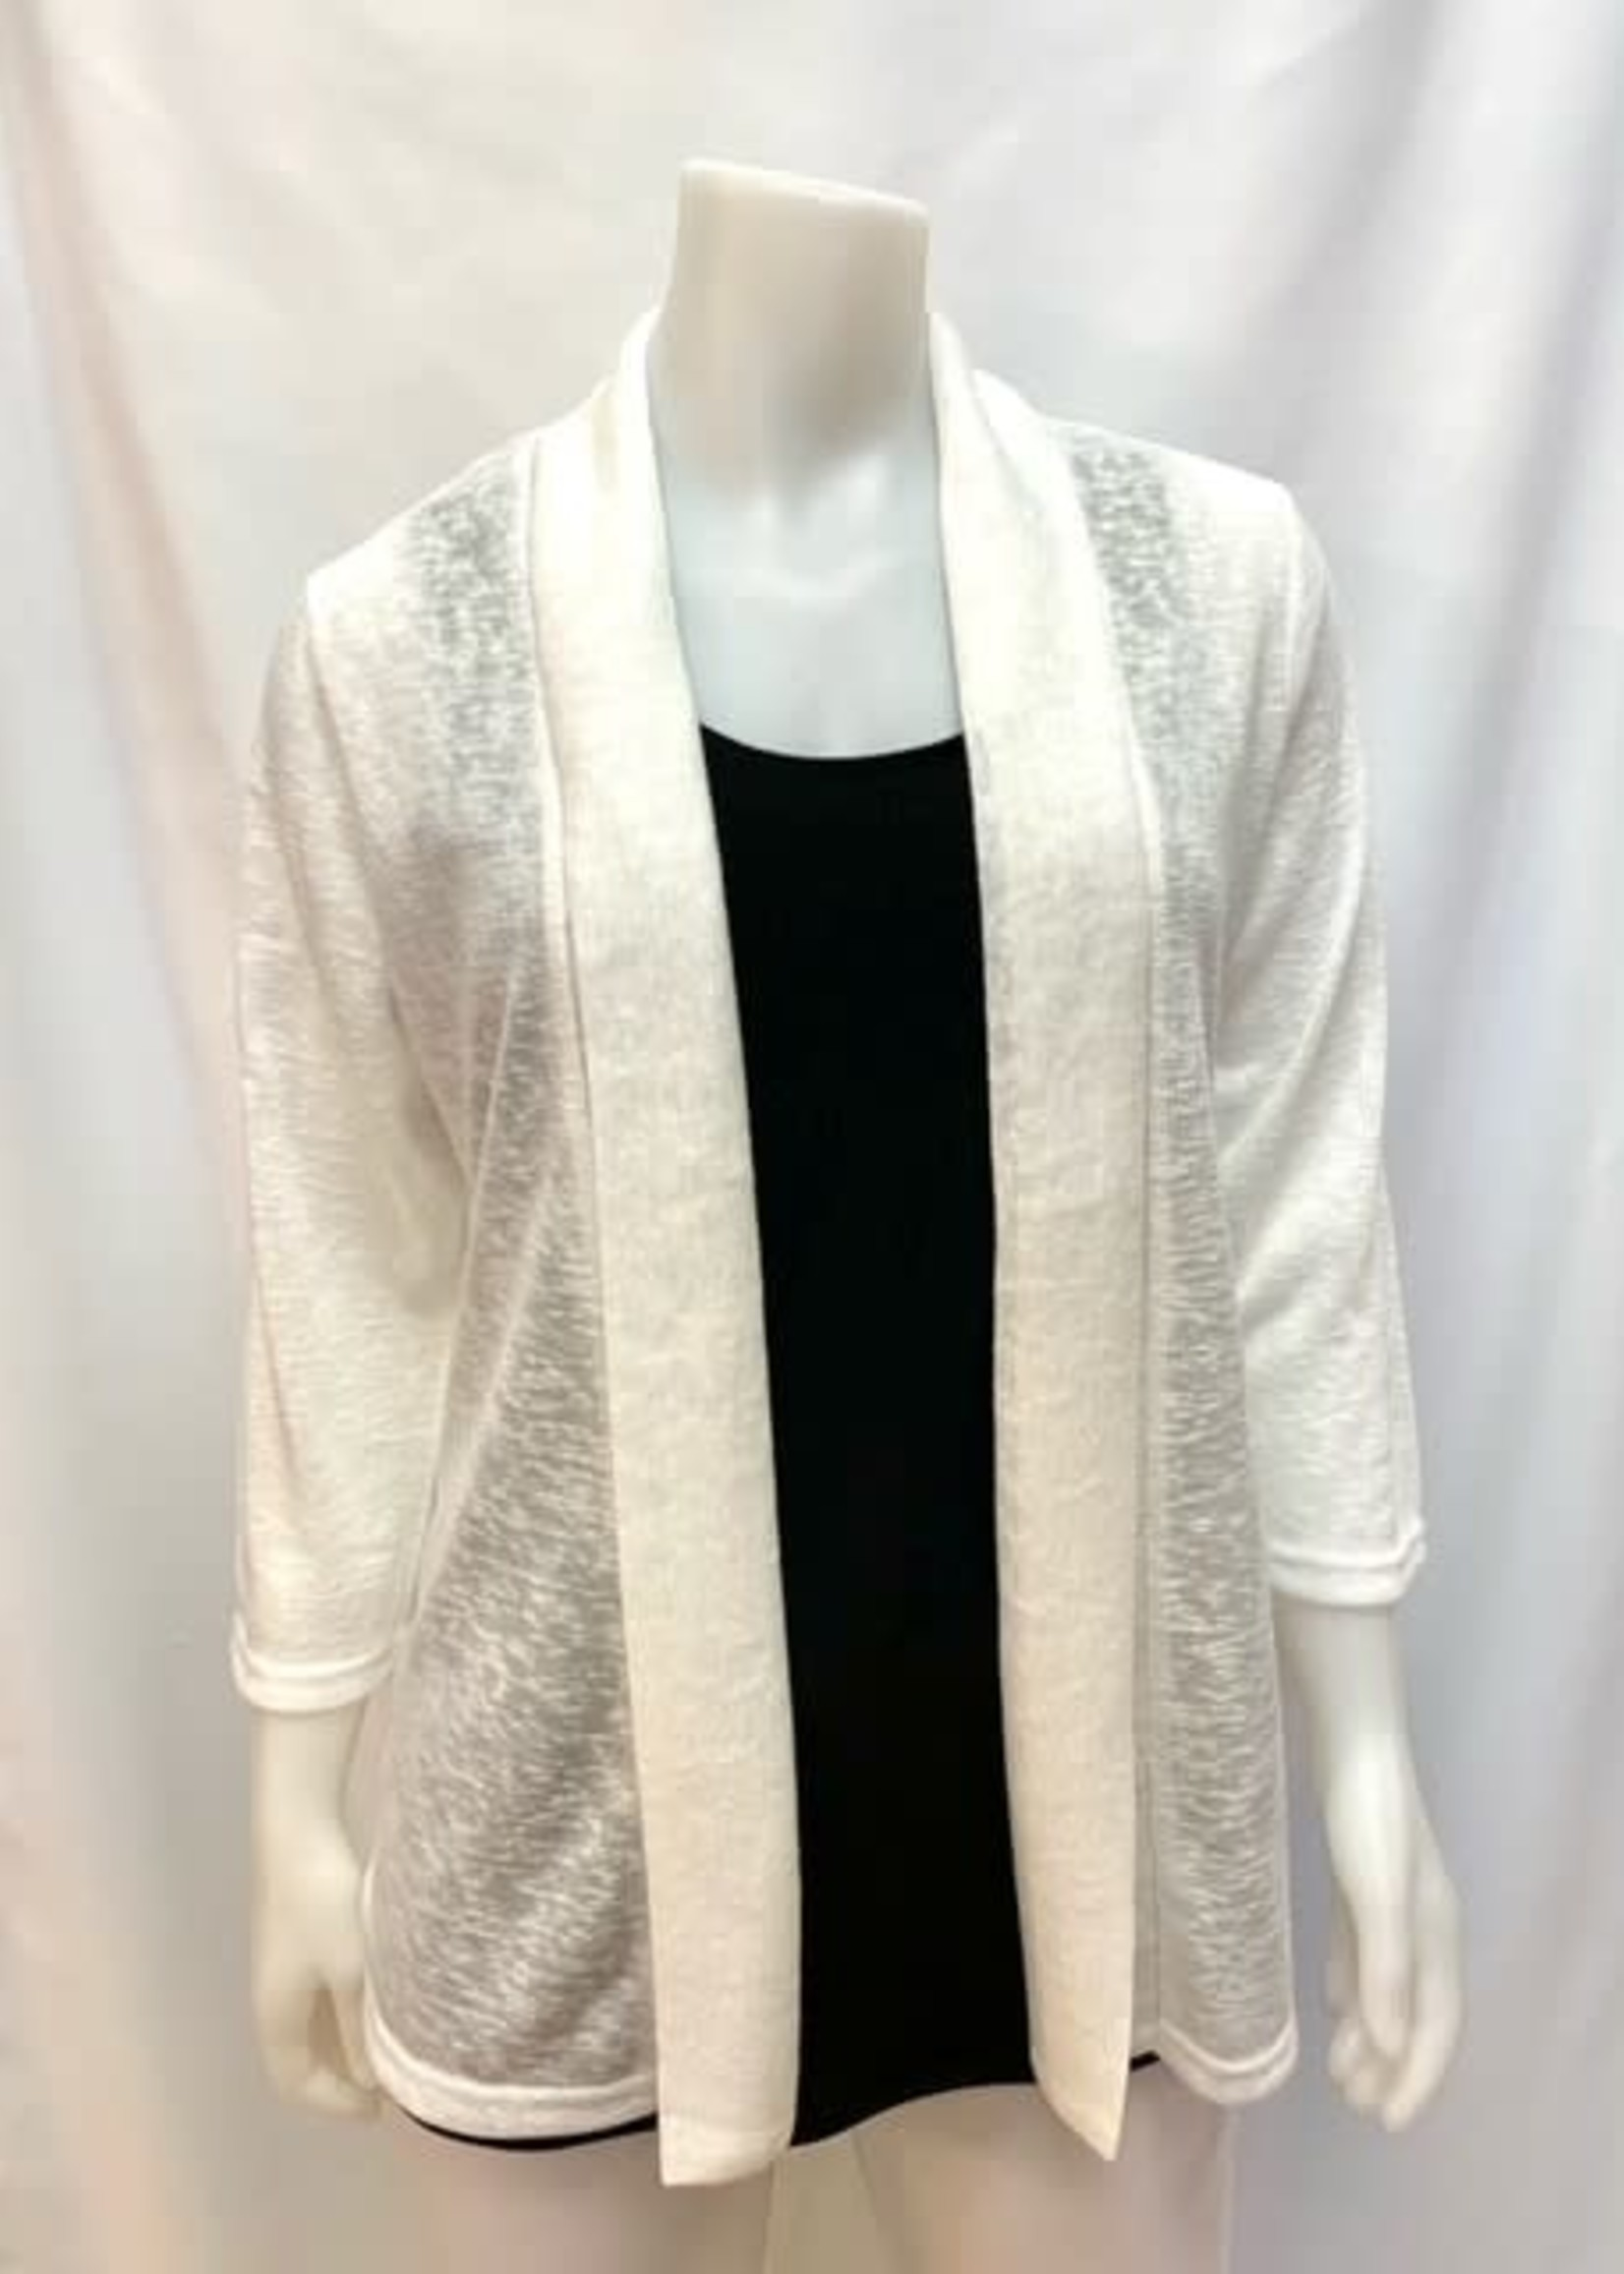 La Madonna Open Cardigan, available in two colors